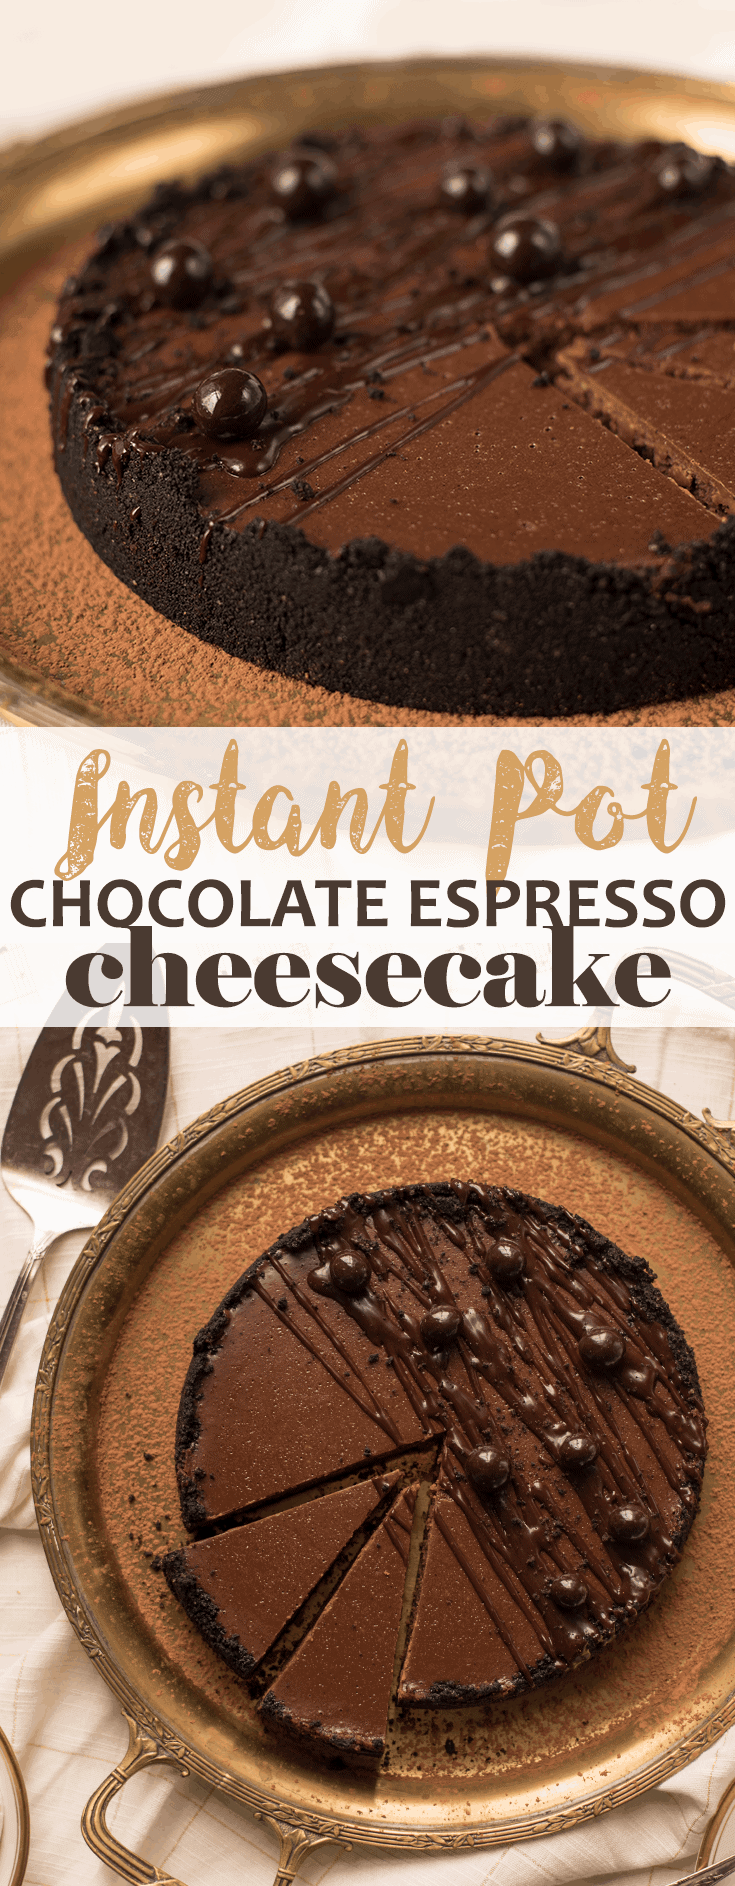 Follow our step-by-step instructions to make this flawless Instant Pot cheesecake with an Oreo crust and a creamy chocolate filling. Give the love of your life a taste of indulgence!